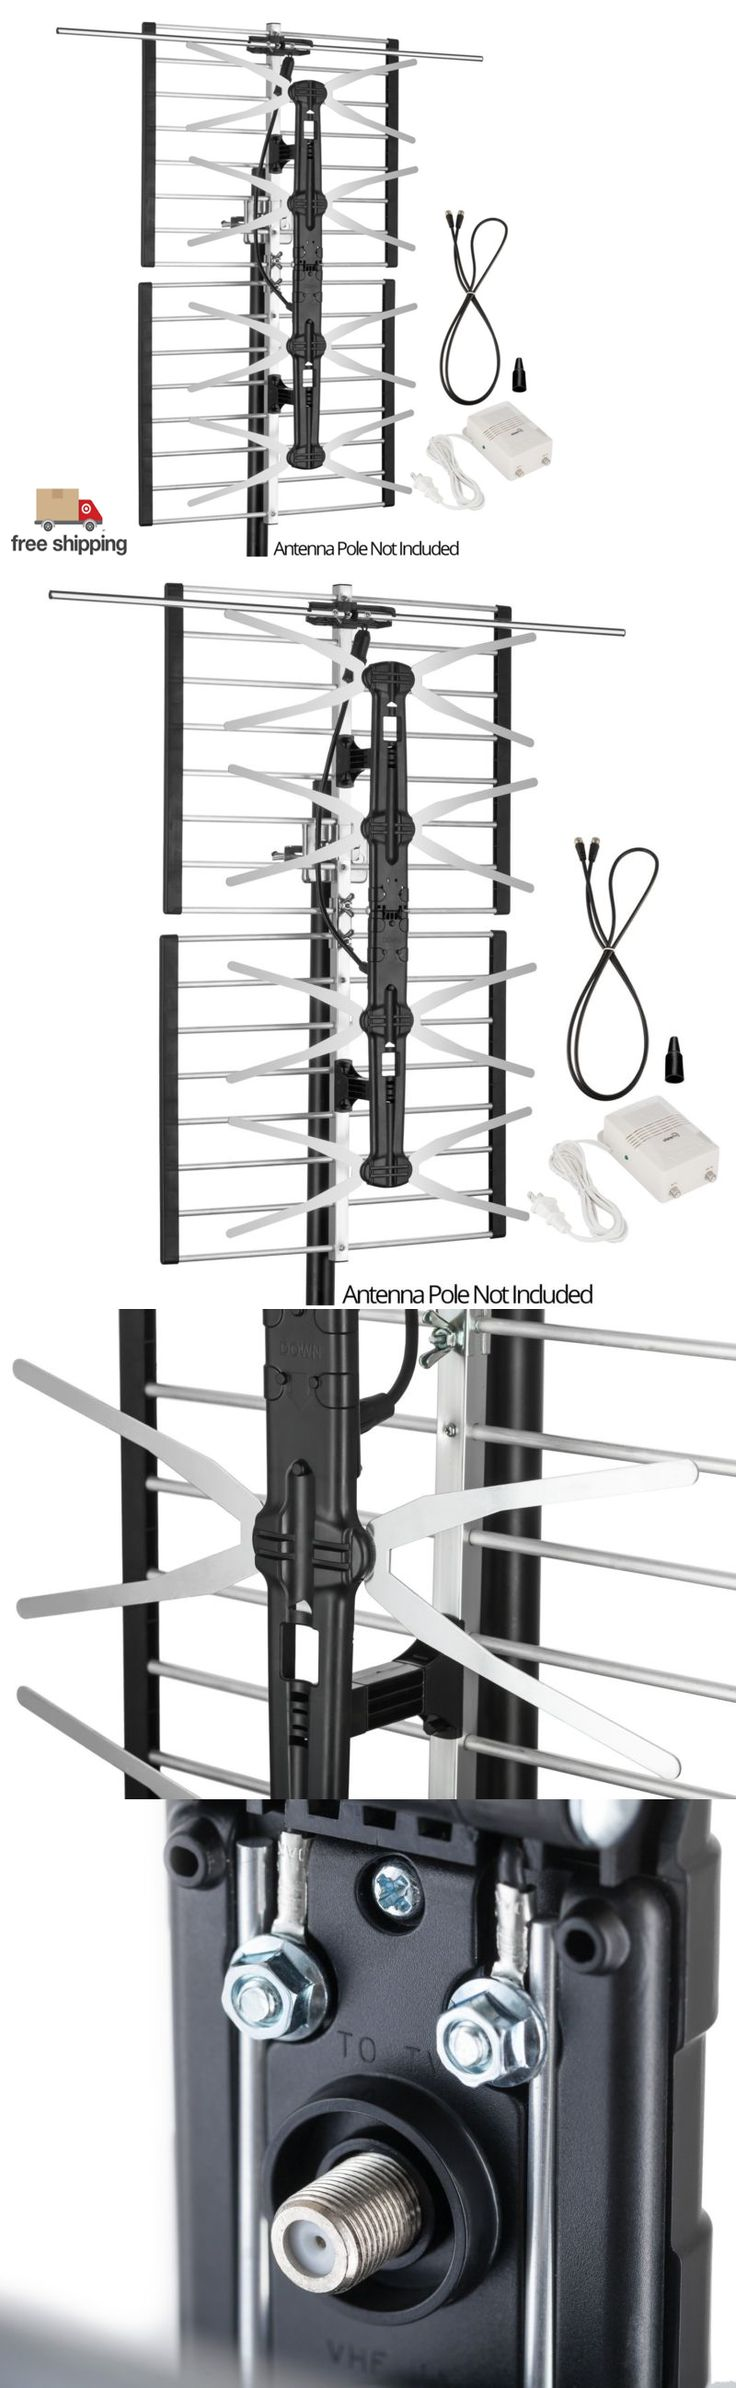 Antennas and Dishes: Digital Hdtv Amplified Tv Antenna Outdoor Attic Range 120 Miles Full Hd Vhf Uhf -> BUY IT NOW ONLY: $51.49 on eBay!